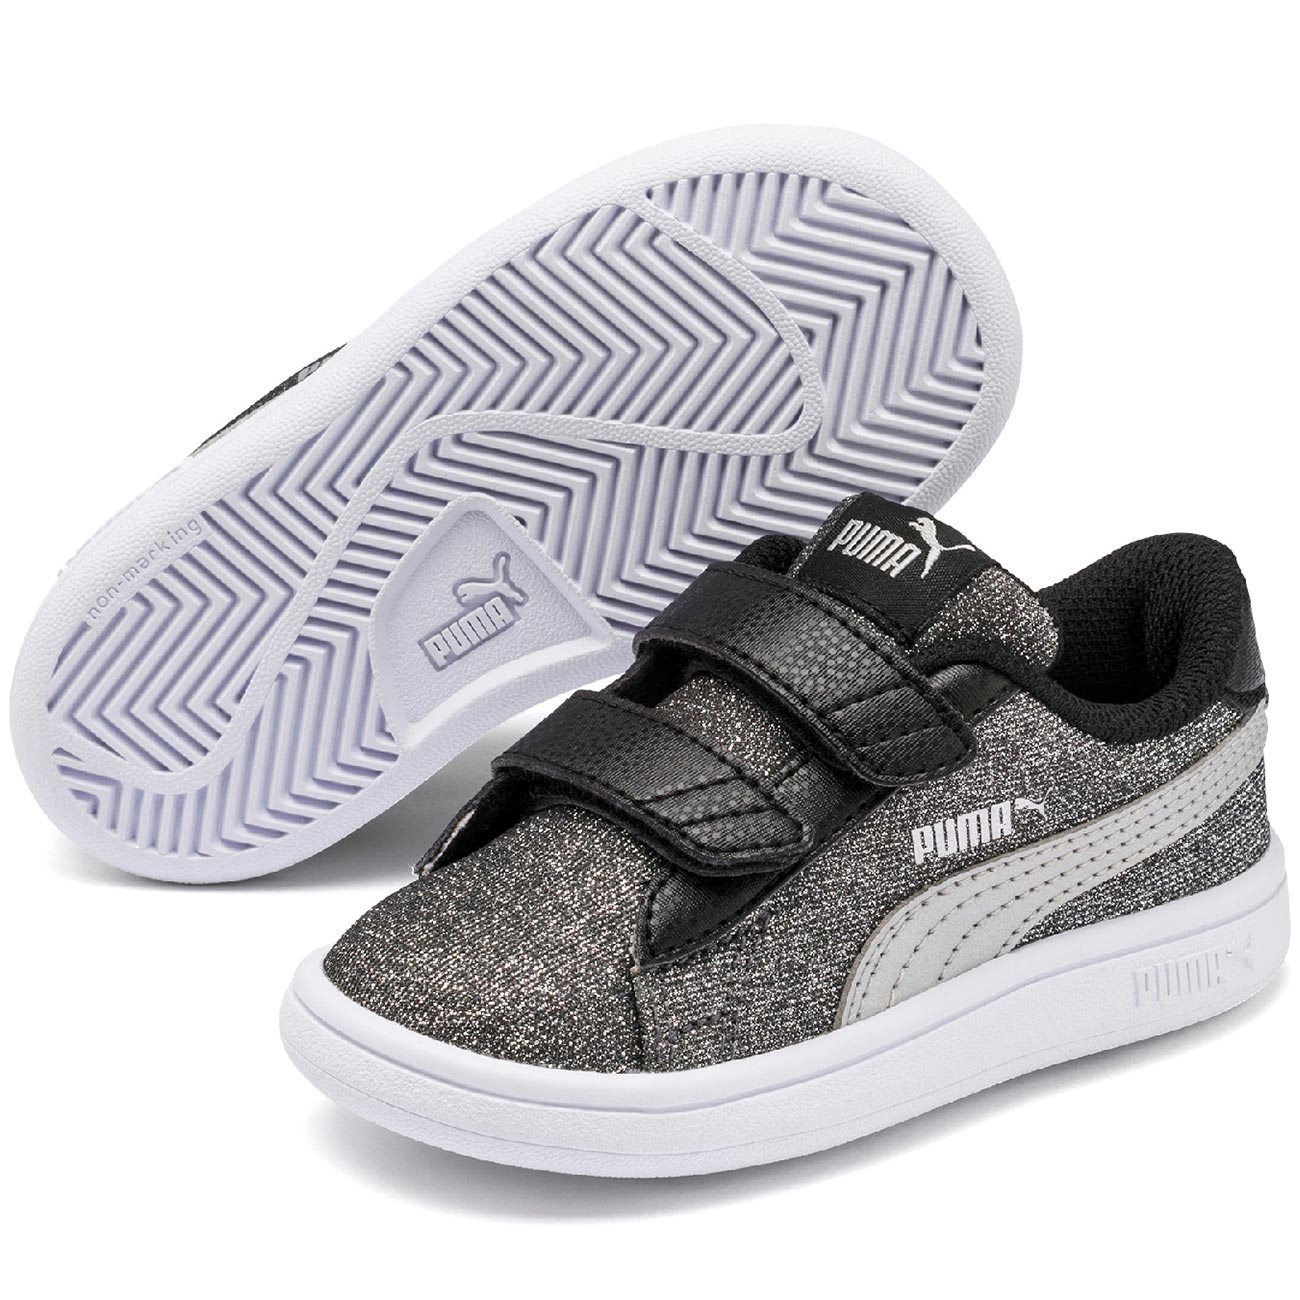 Puma Smash Shoes $22 Shipped!